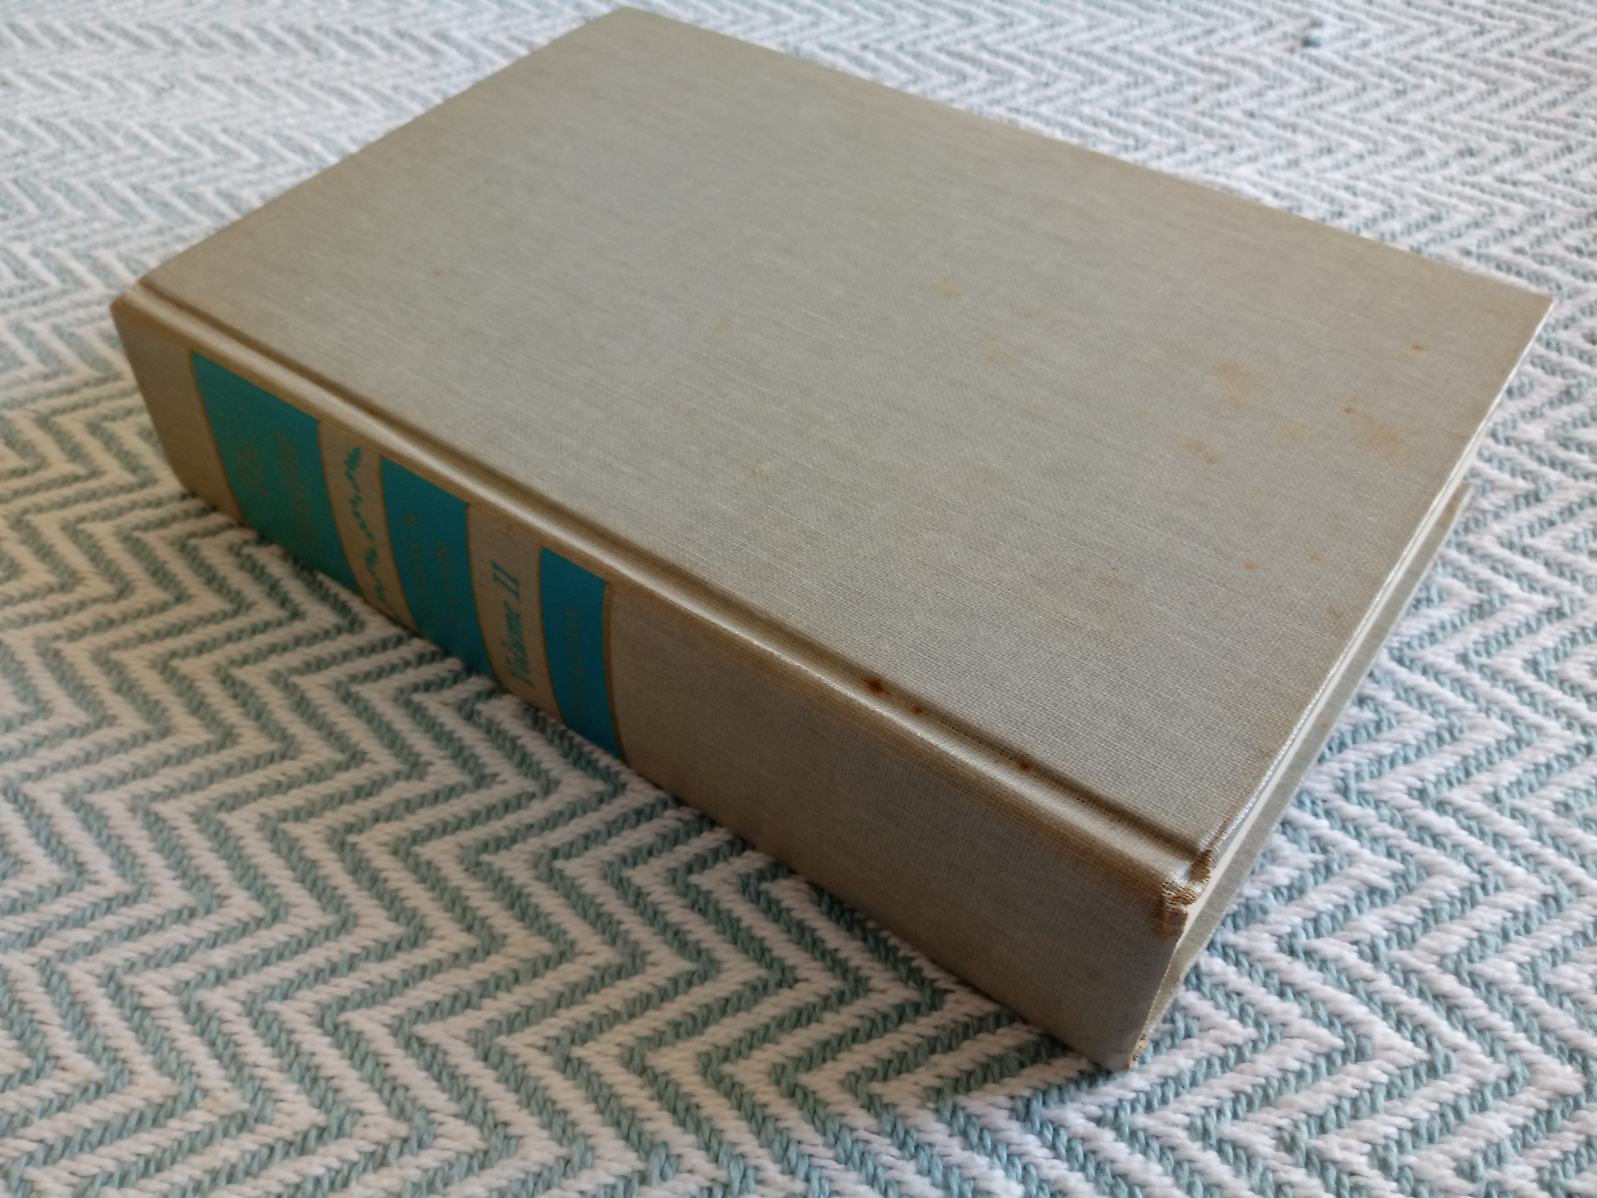 2 x The Tontine Volumes 1&2 by Thomas B. Costain hardback books 465 and 930 pages with inscription - Image 2 of 8